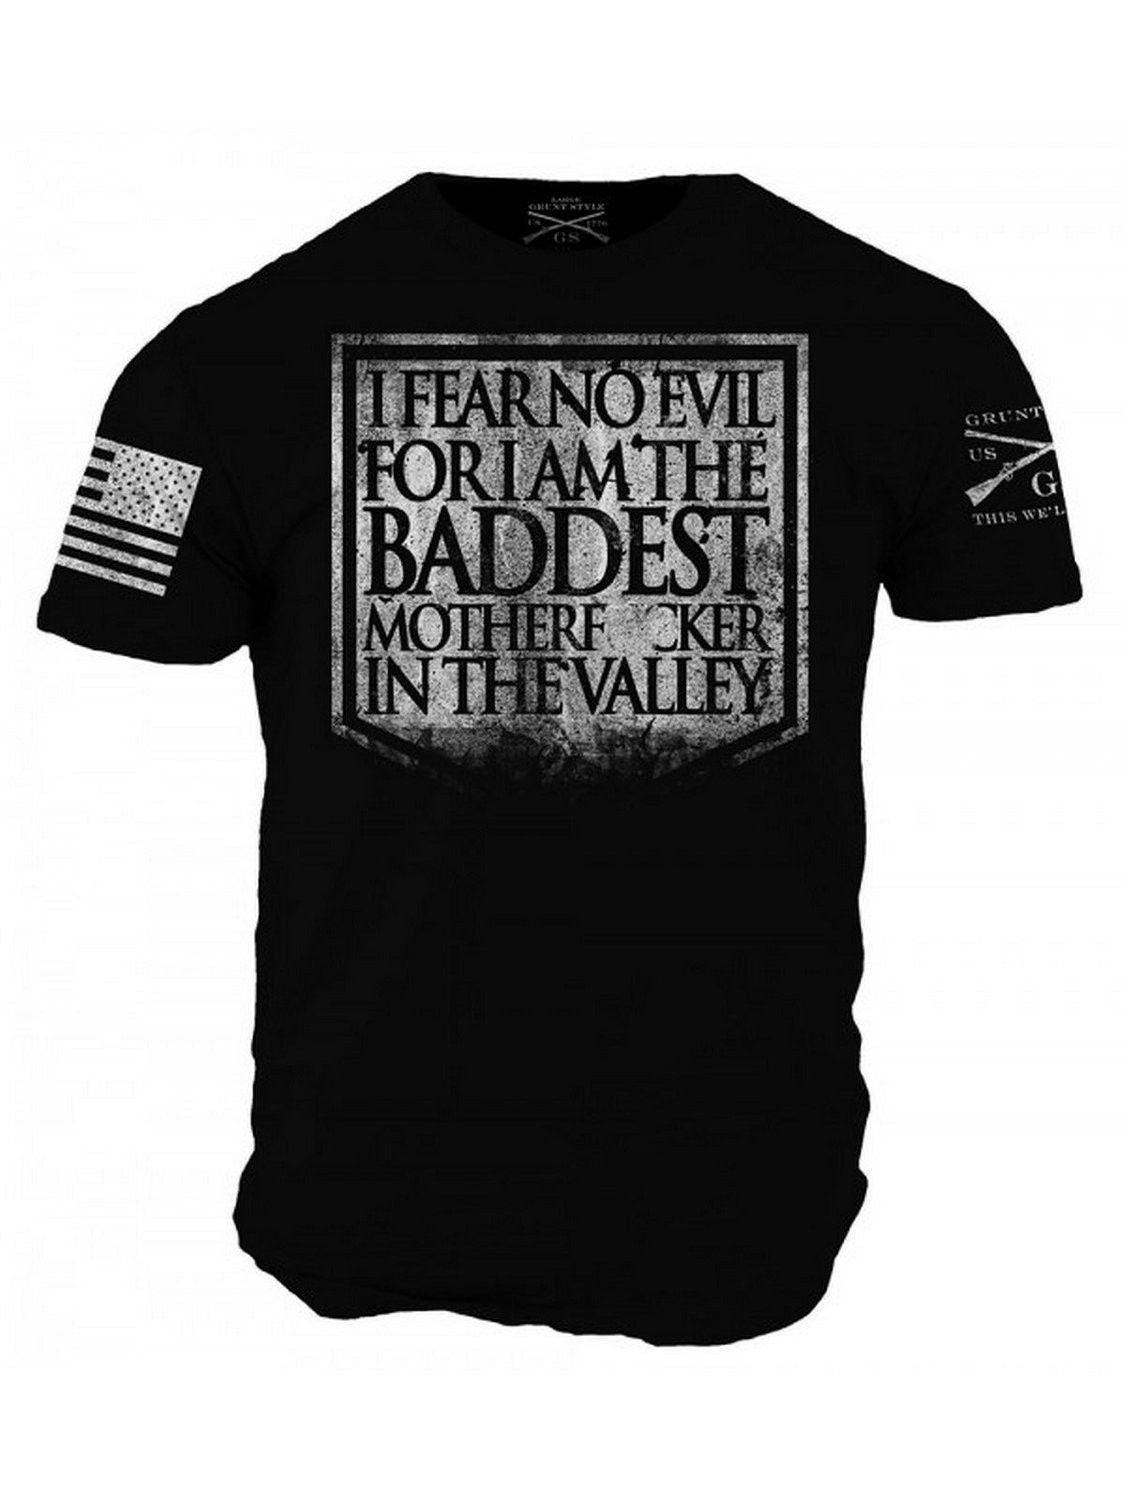 c50a560eaaa Fear No Evil T-Shirt - Grunt Style Military Men s Black Graphic Tee Shirt